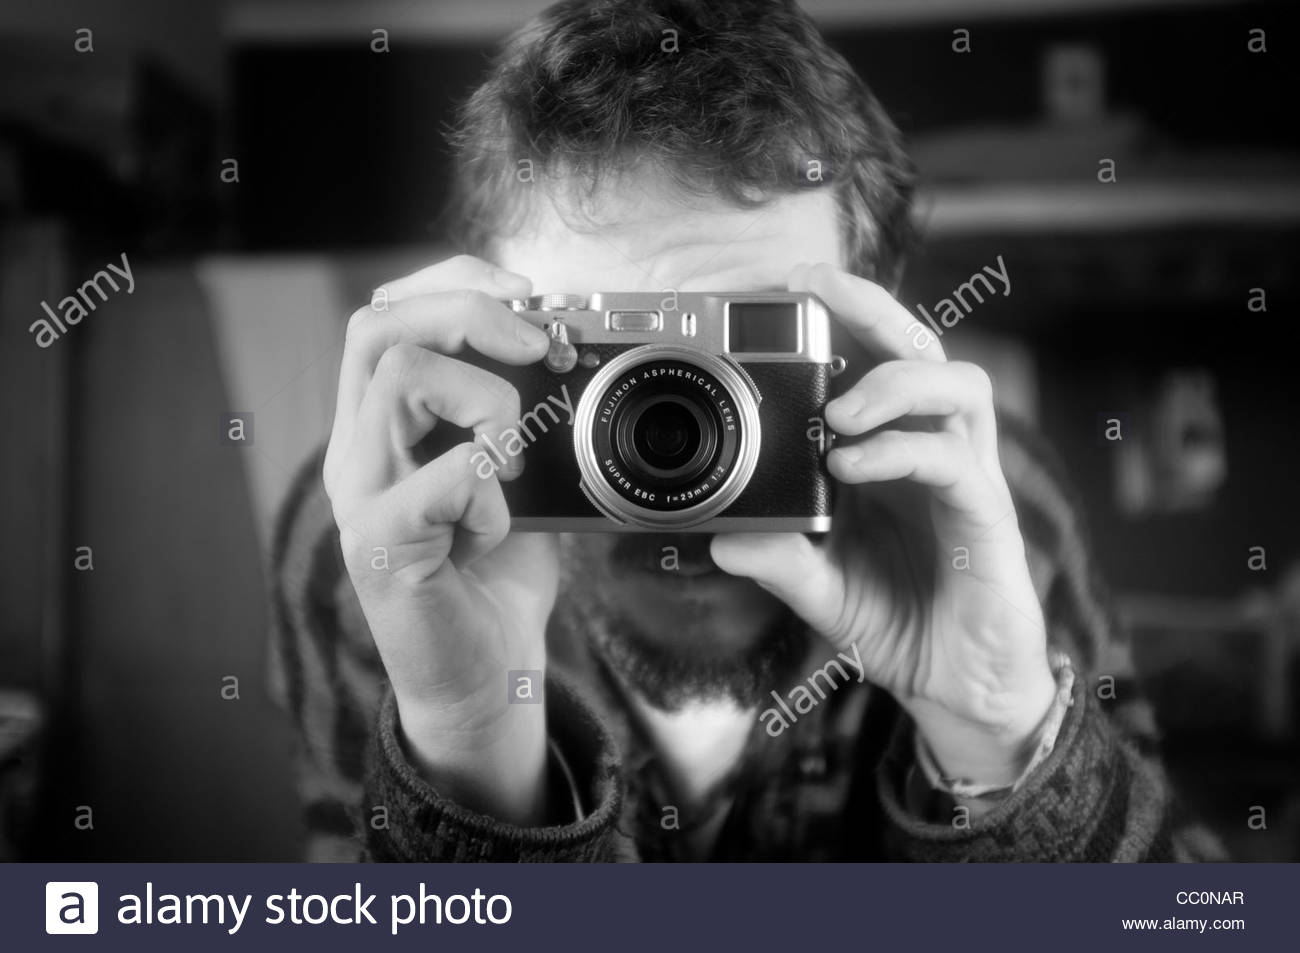 Man taking a photos with a Fuji x100 digital camera - Stock Image